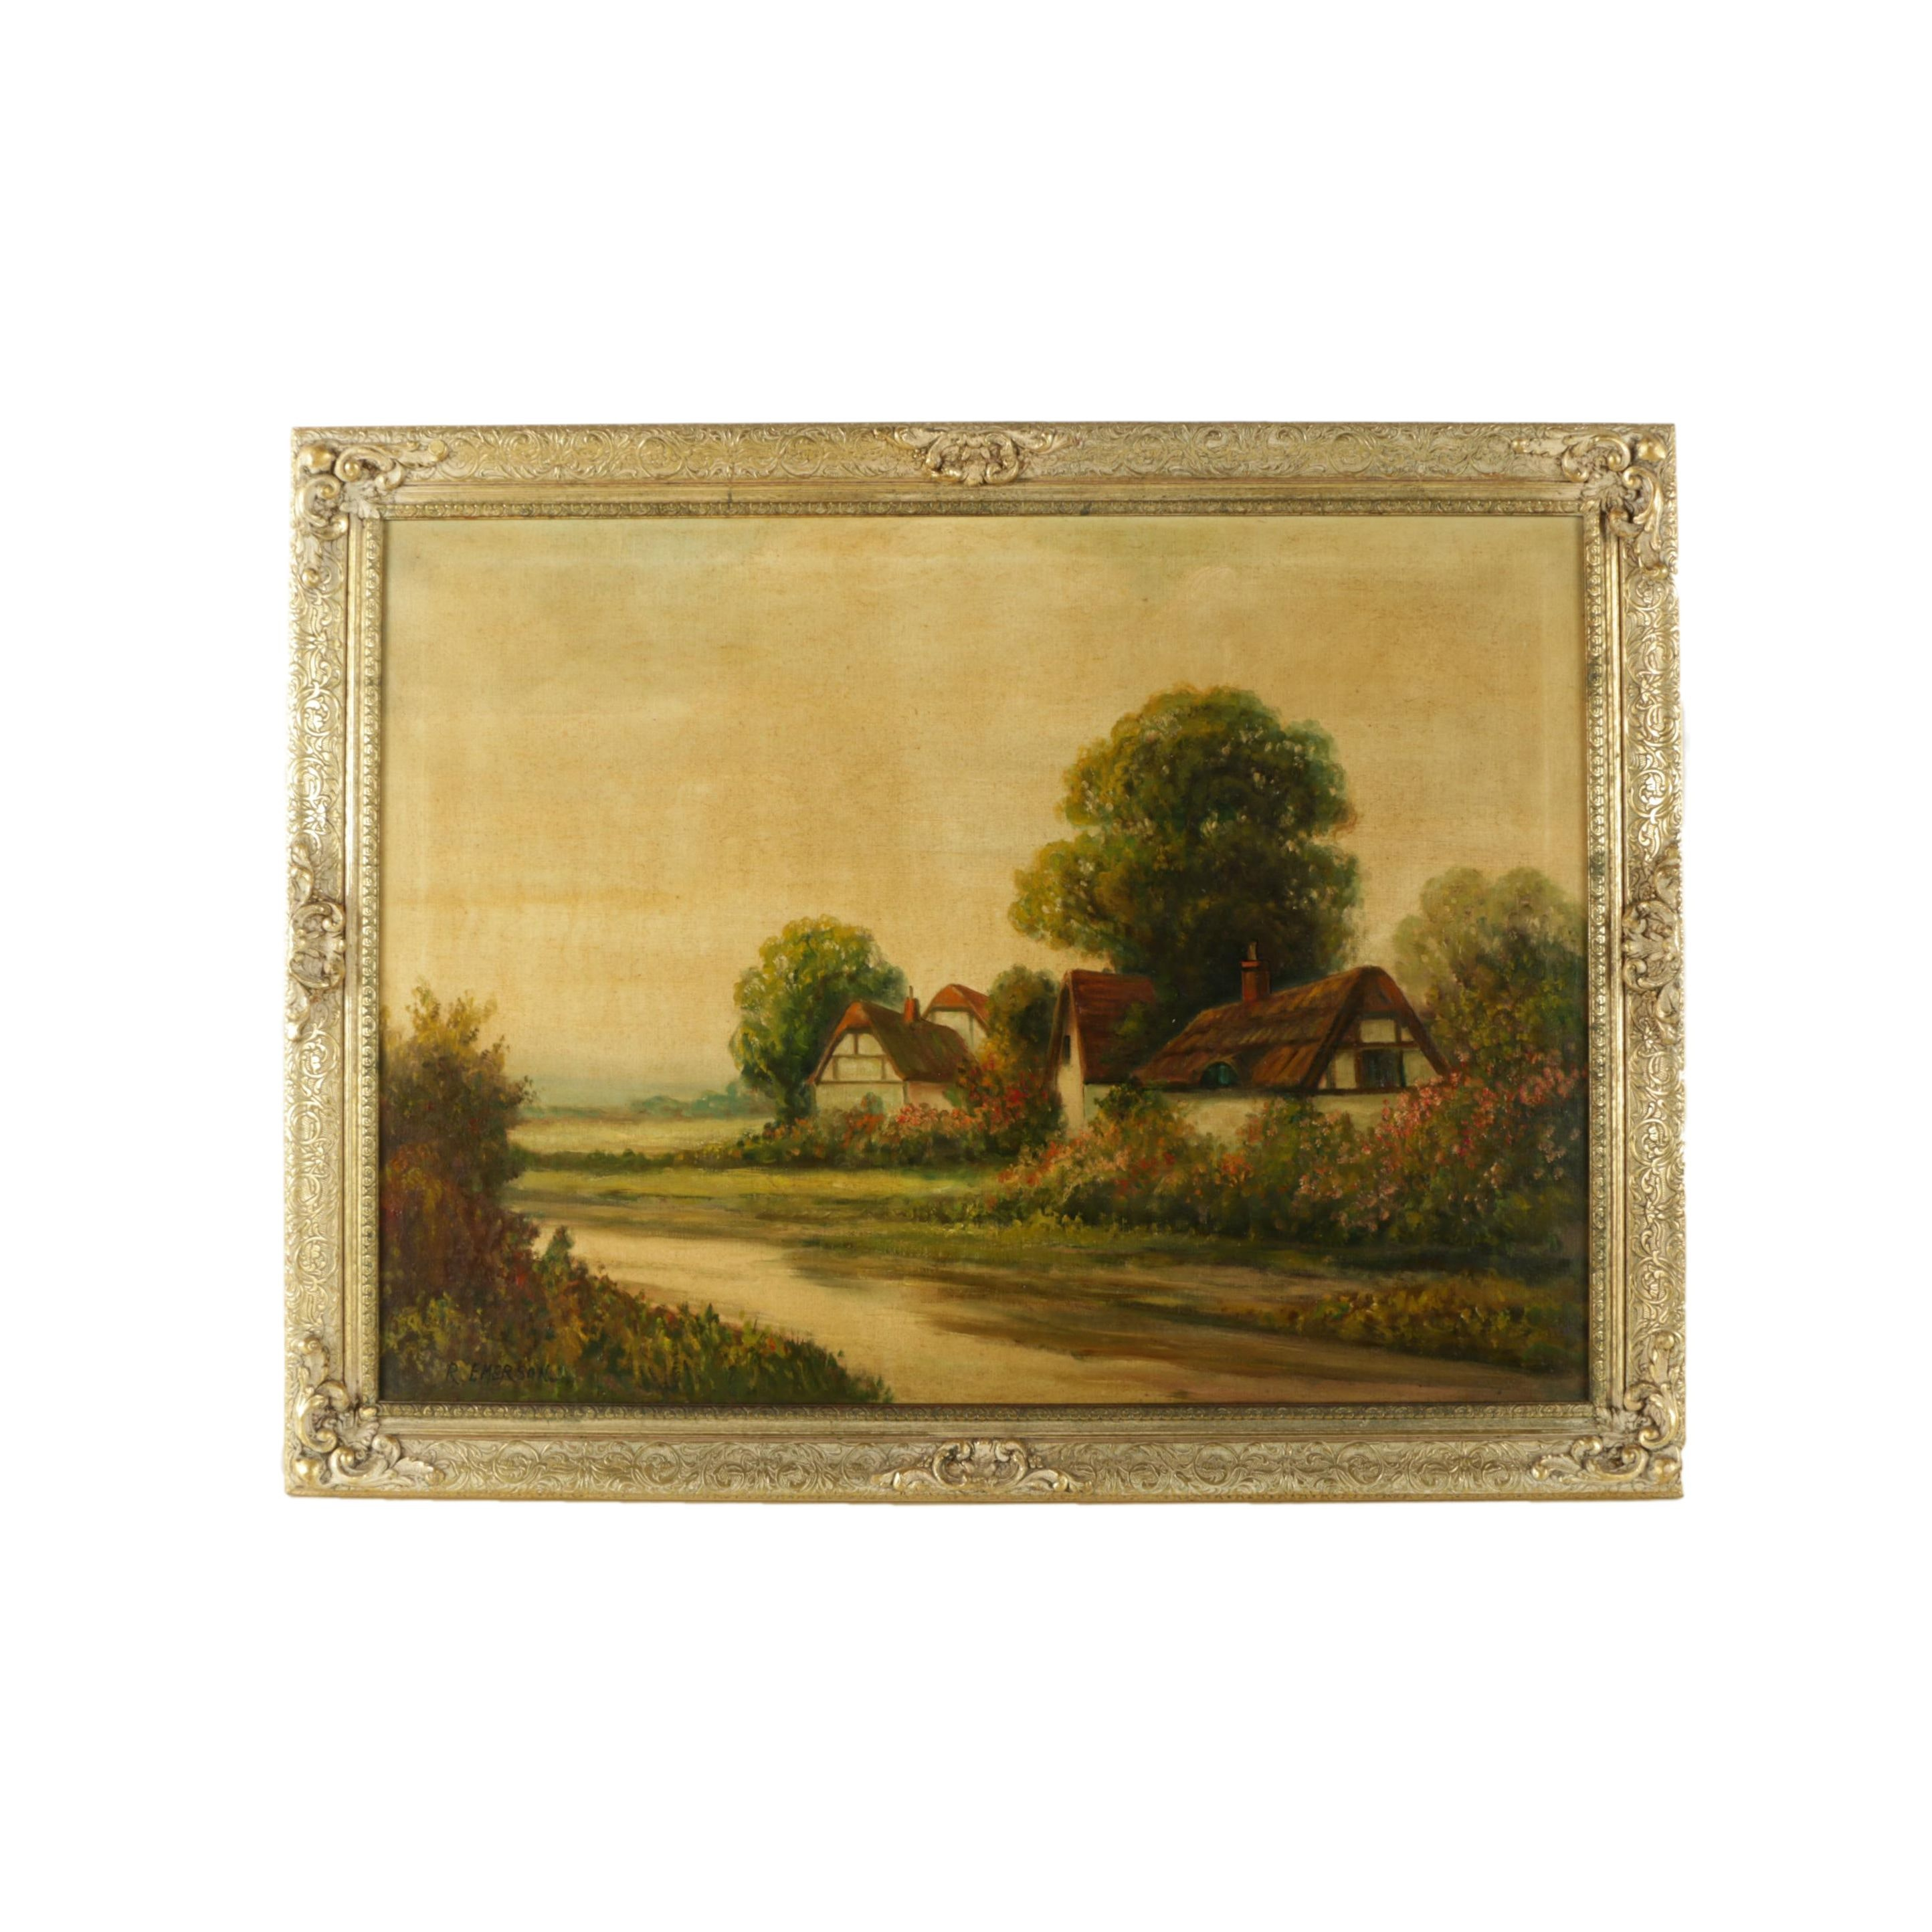 R. Emerson Oil Painting on Canvas of English Landscape with Thatched Cottages